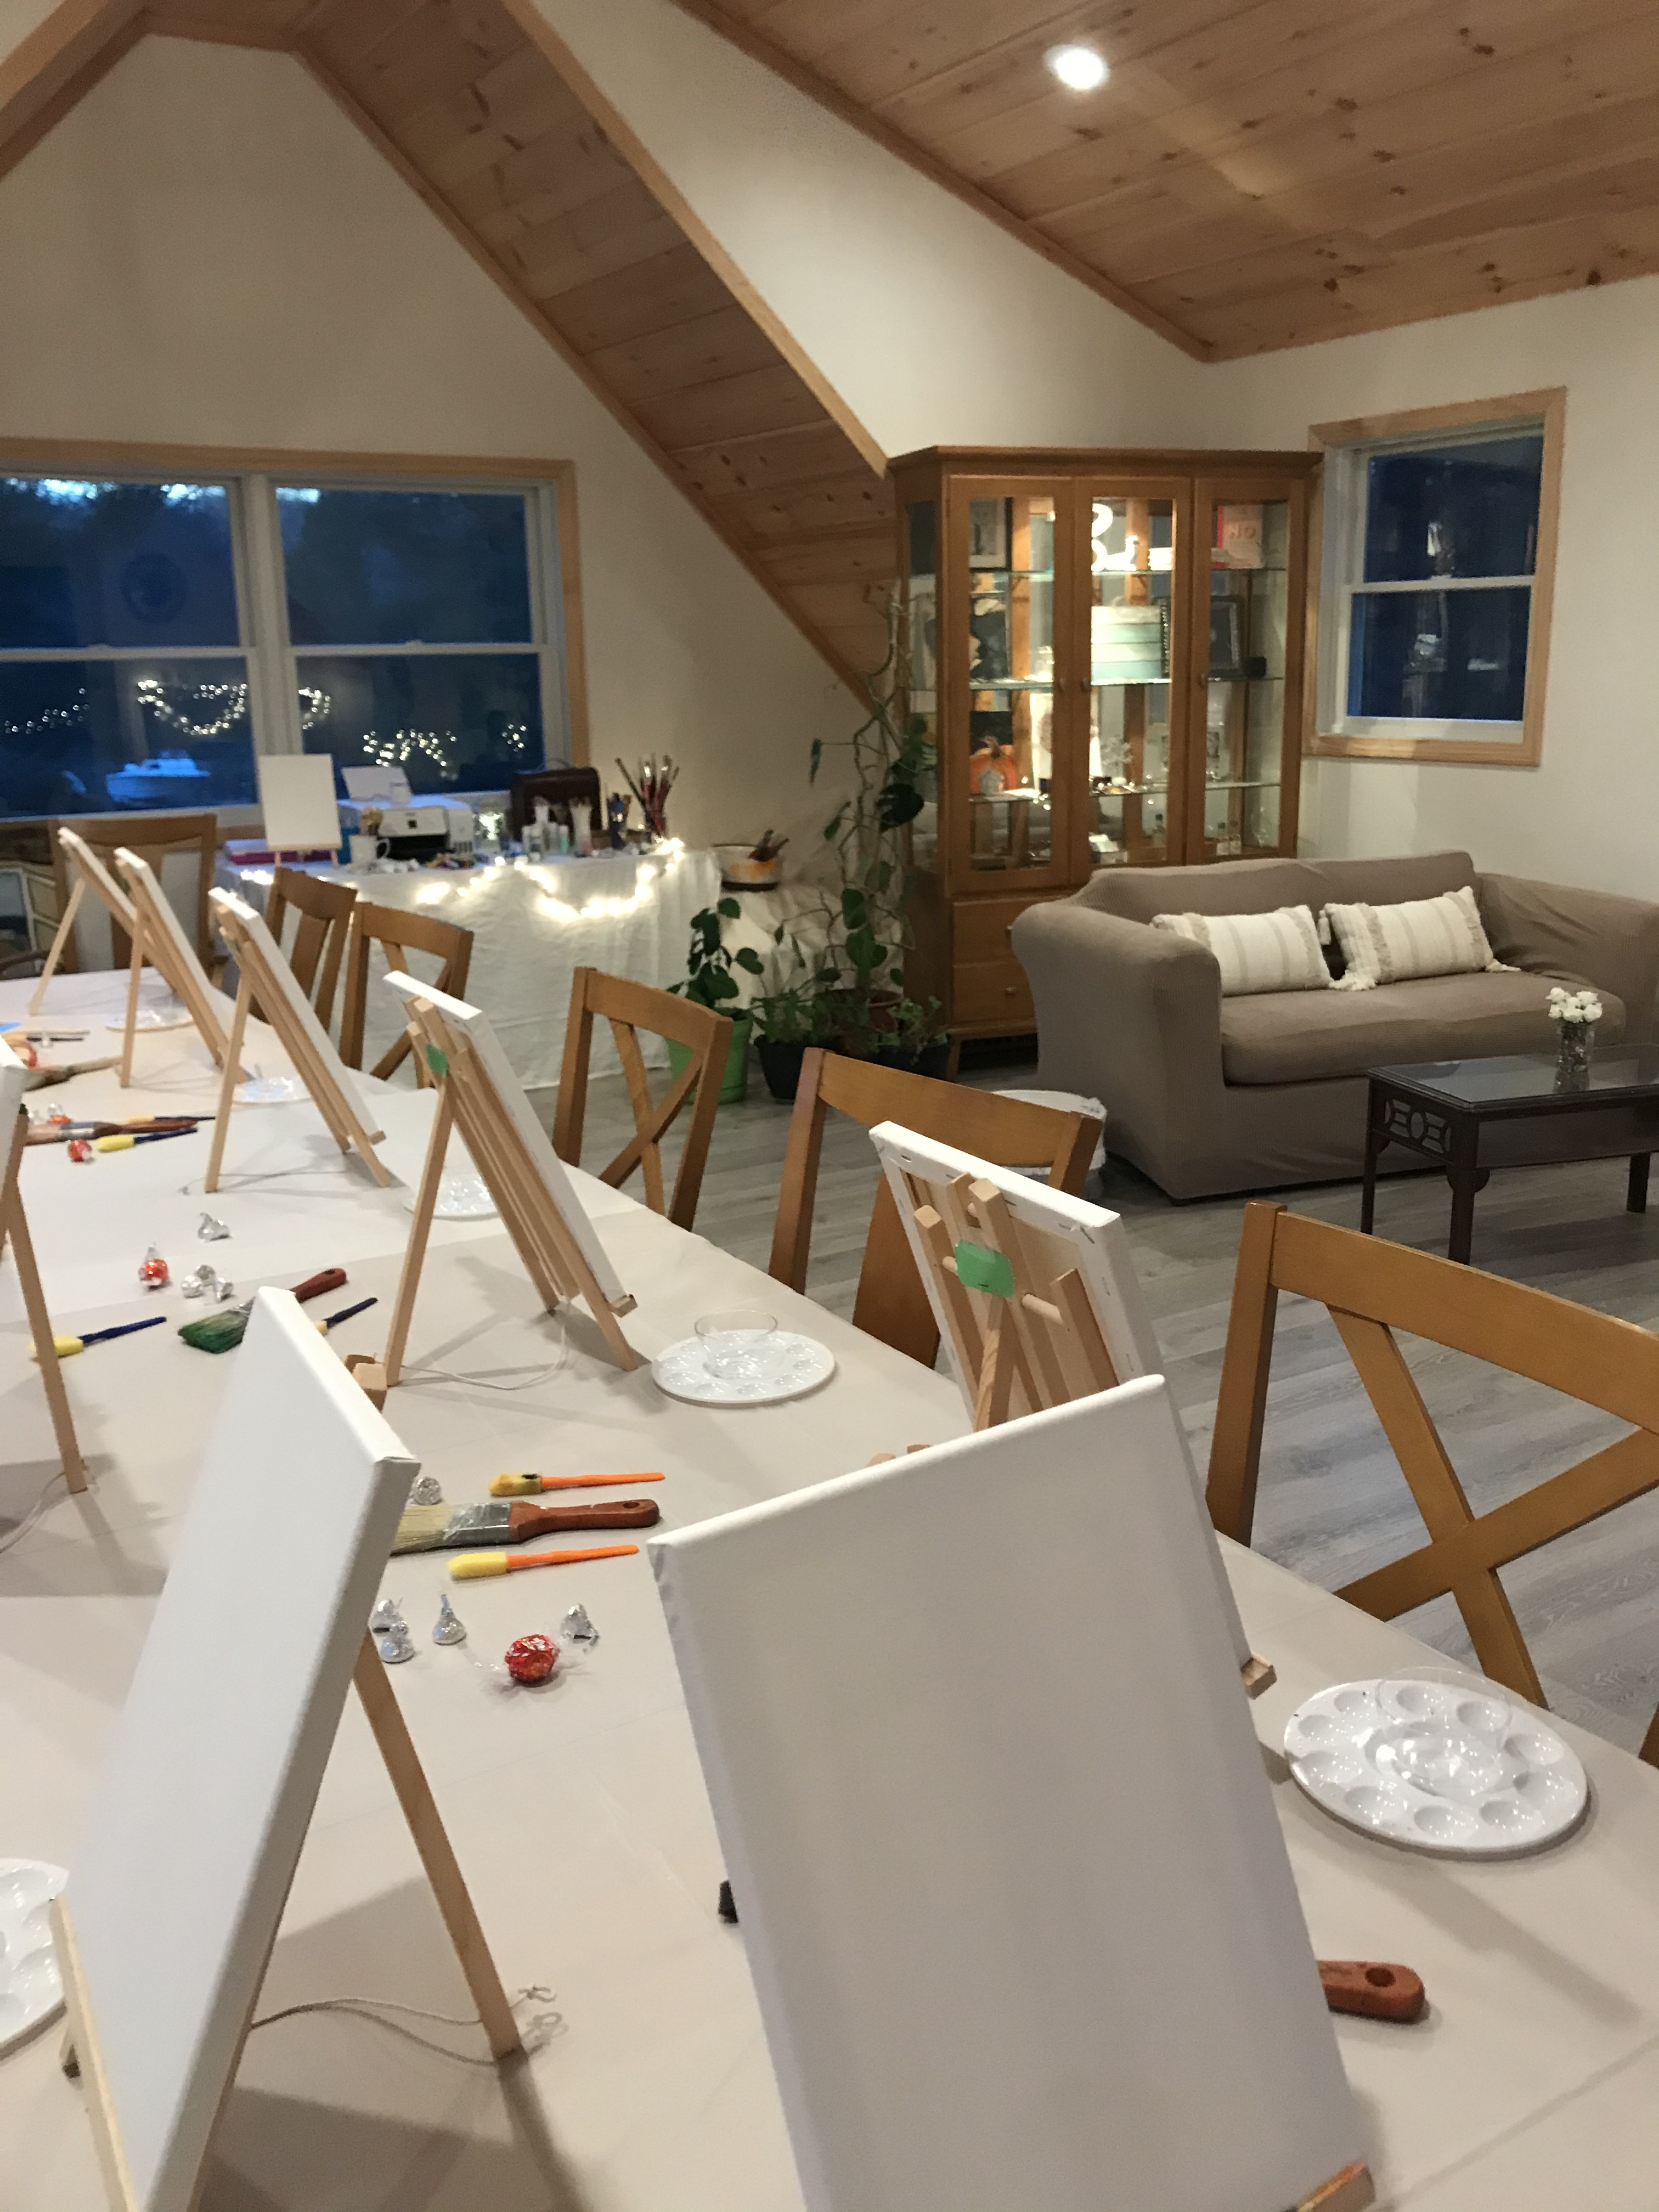 Inside ROOT Design's Studio on a Paint & Sip Night